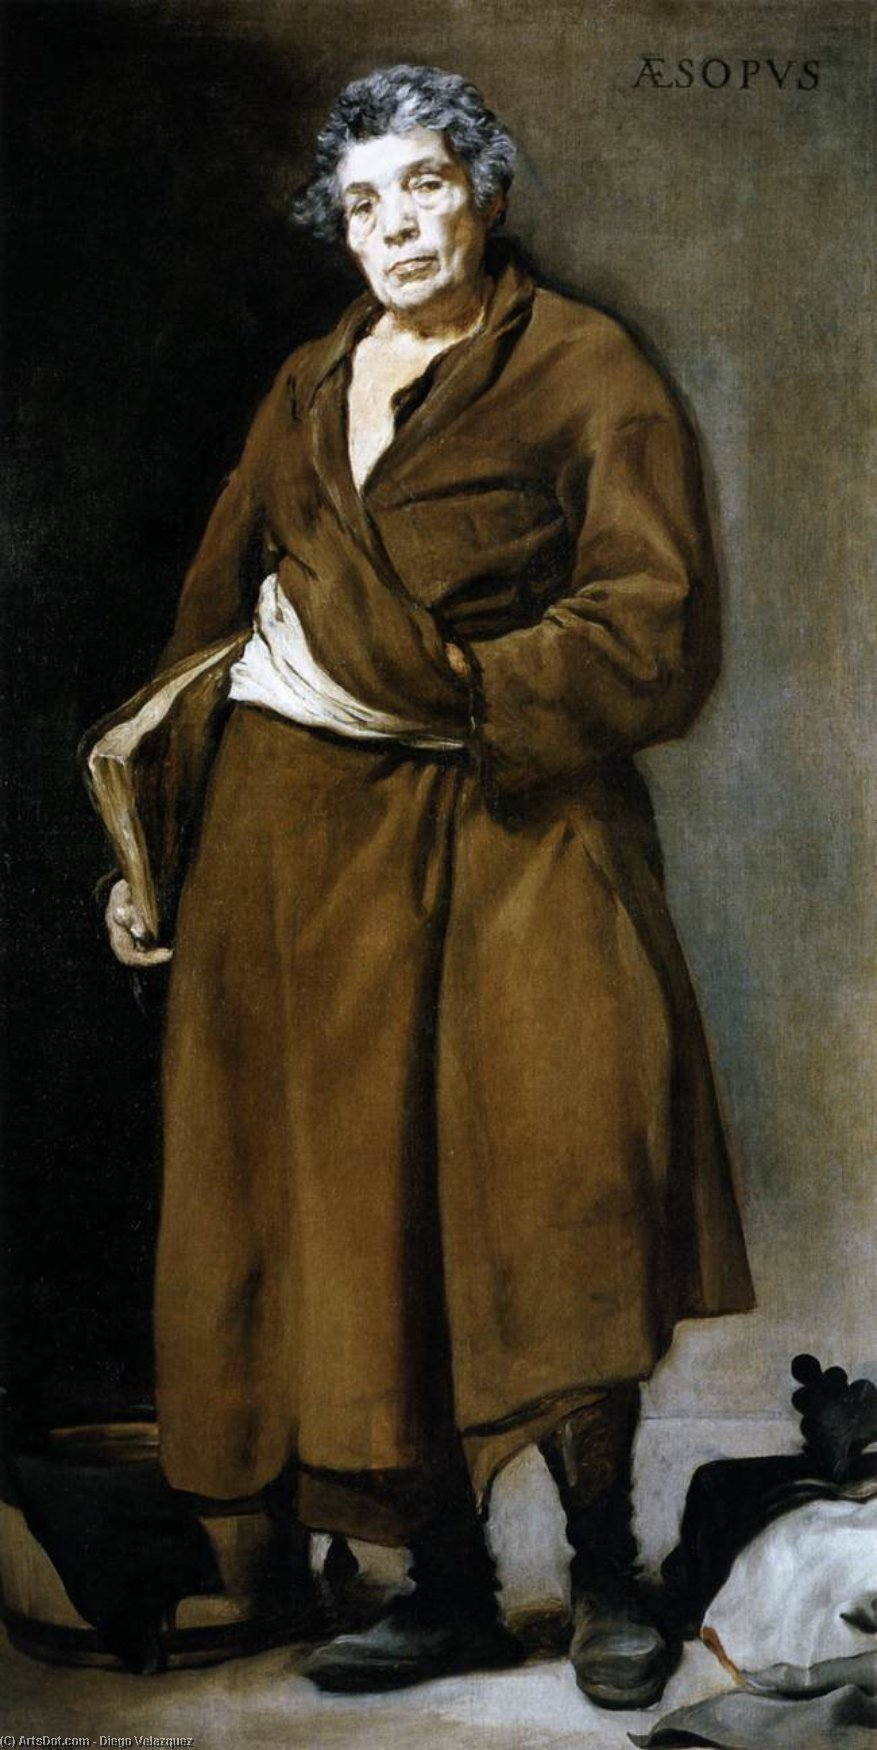 Aesop, Oil On Canvas by Diego Velazquez (1599-1660, Spain)